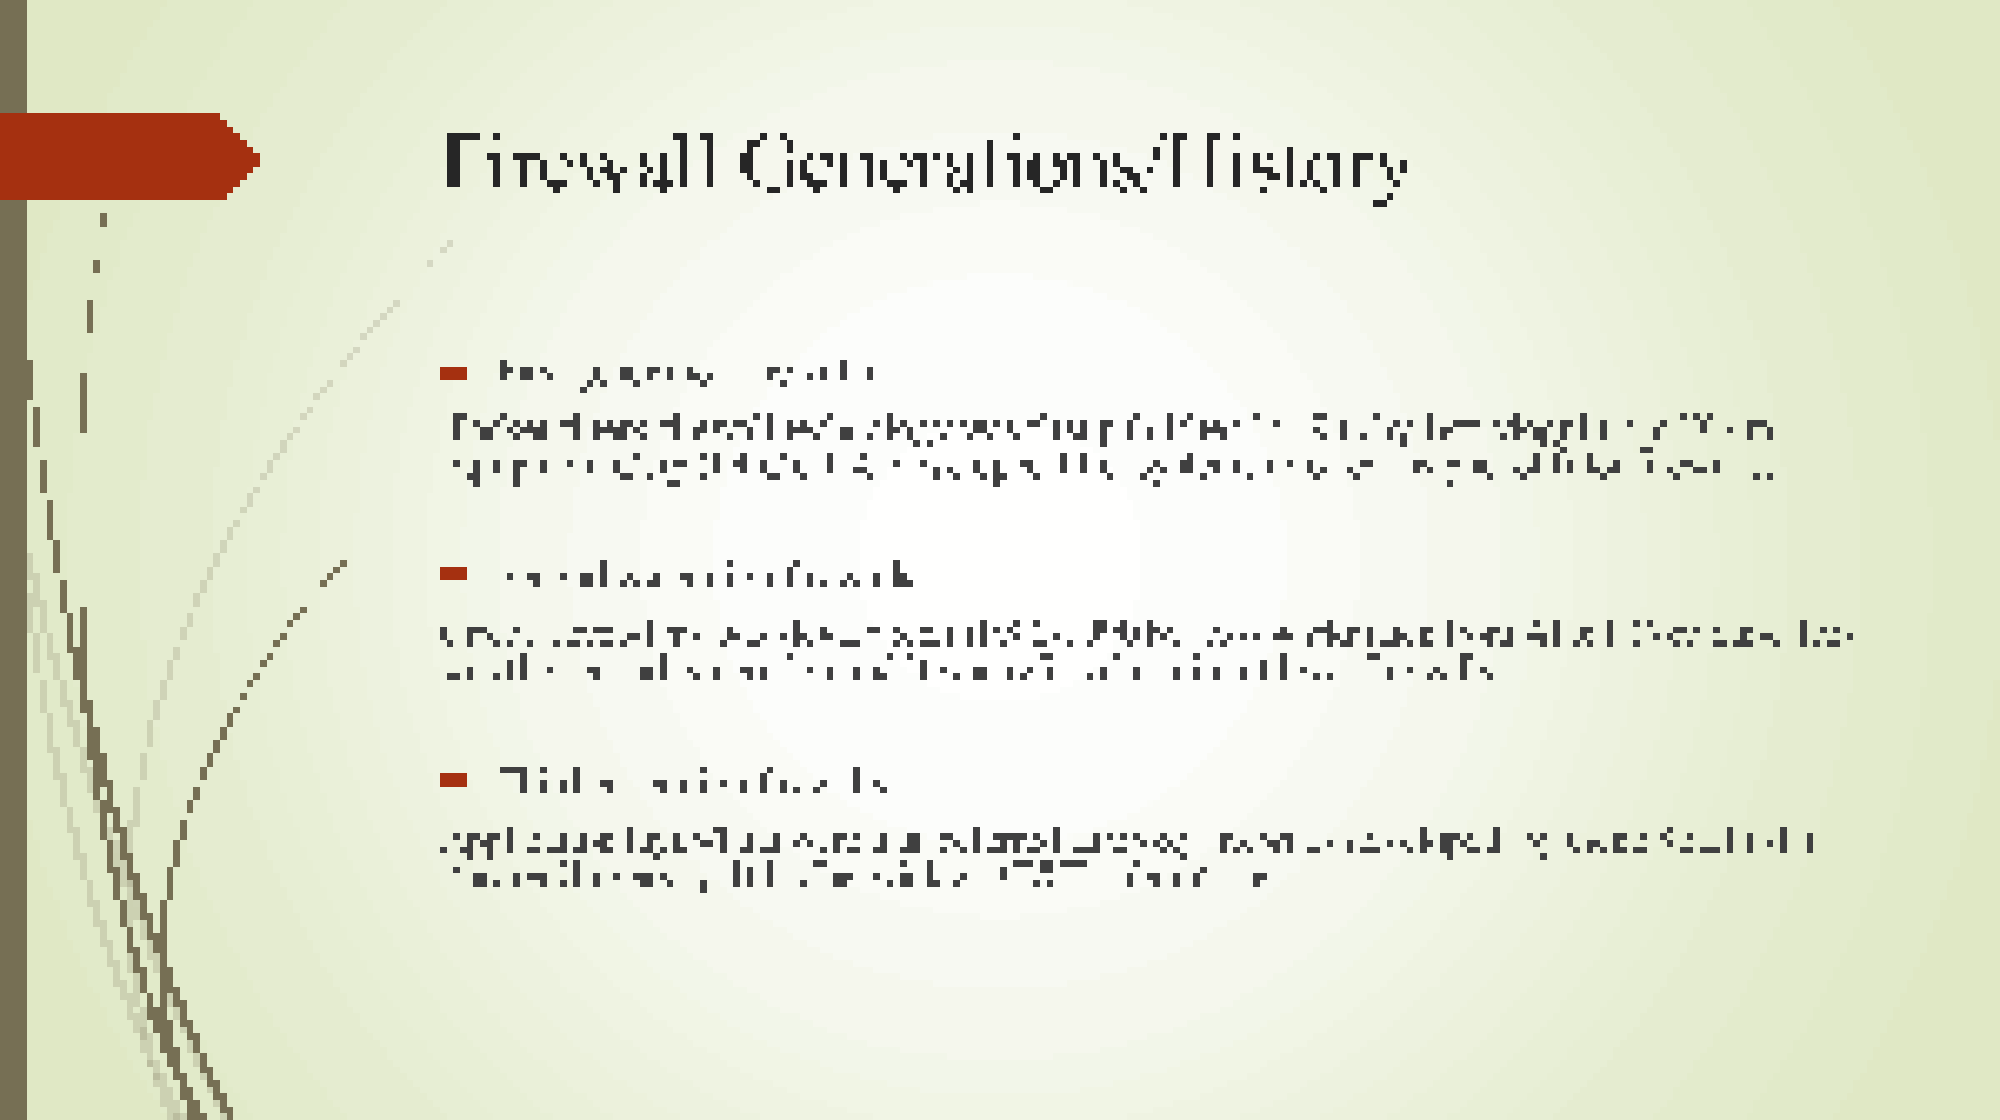 an introduction to the history of firewall The first ever firewalls used were of packet filtering type only as the trends of  network threats started changing, so did the firewall building.